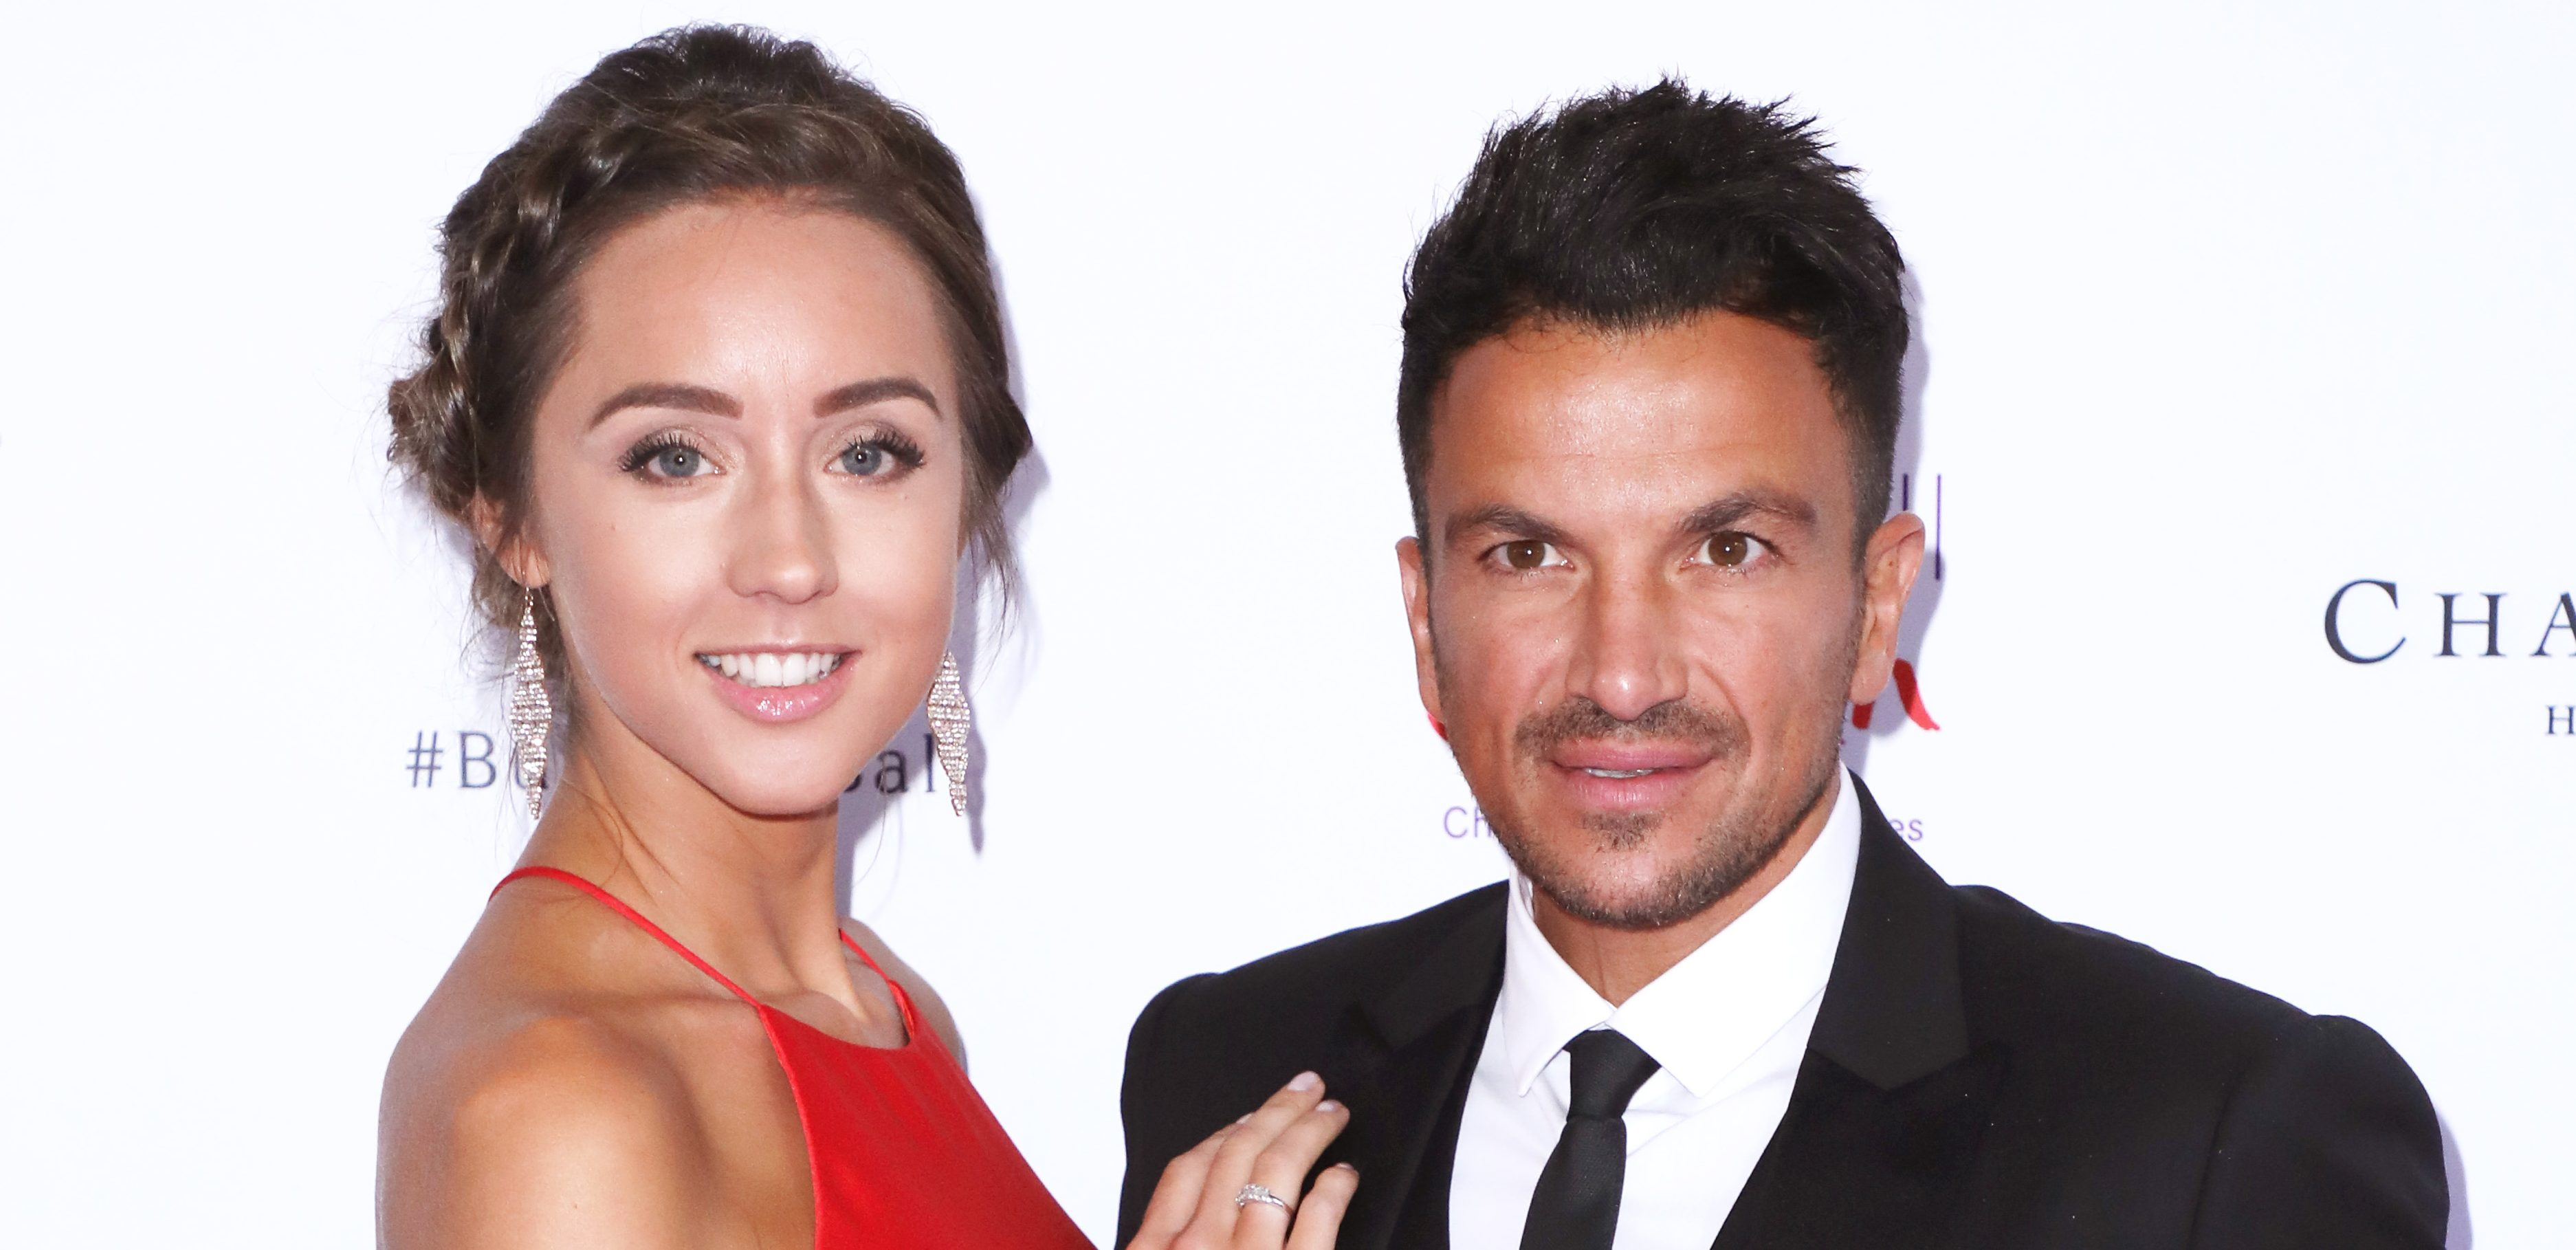 Peter Andre shares cute pictures with his doctor wife Emily as fans praise her natural beauty